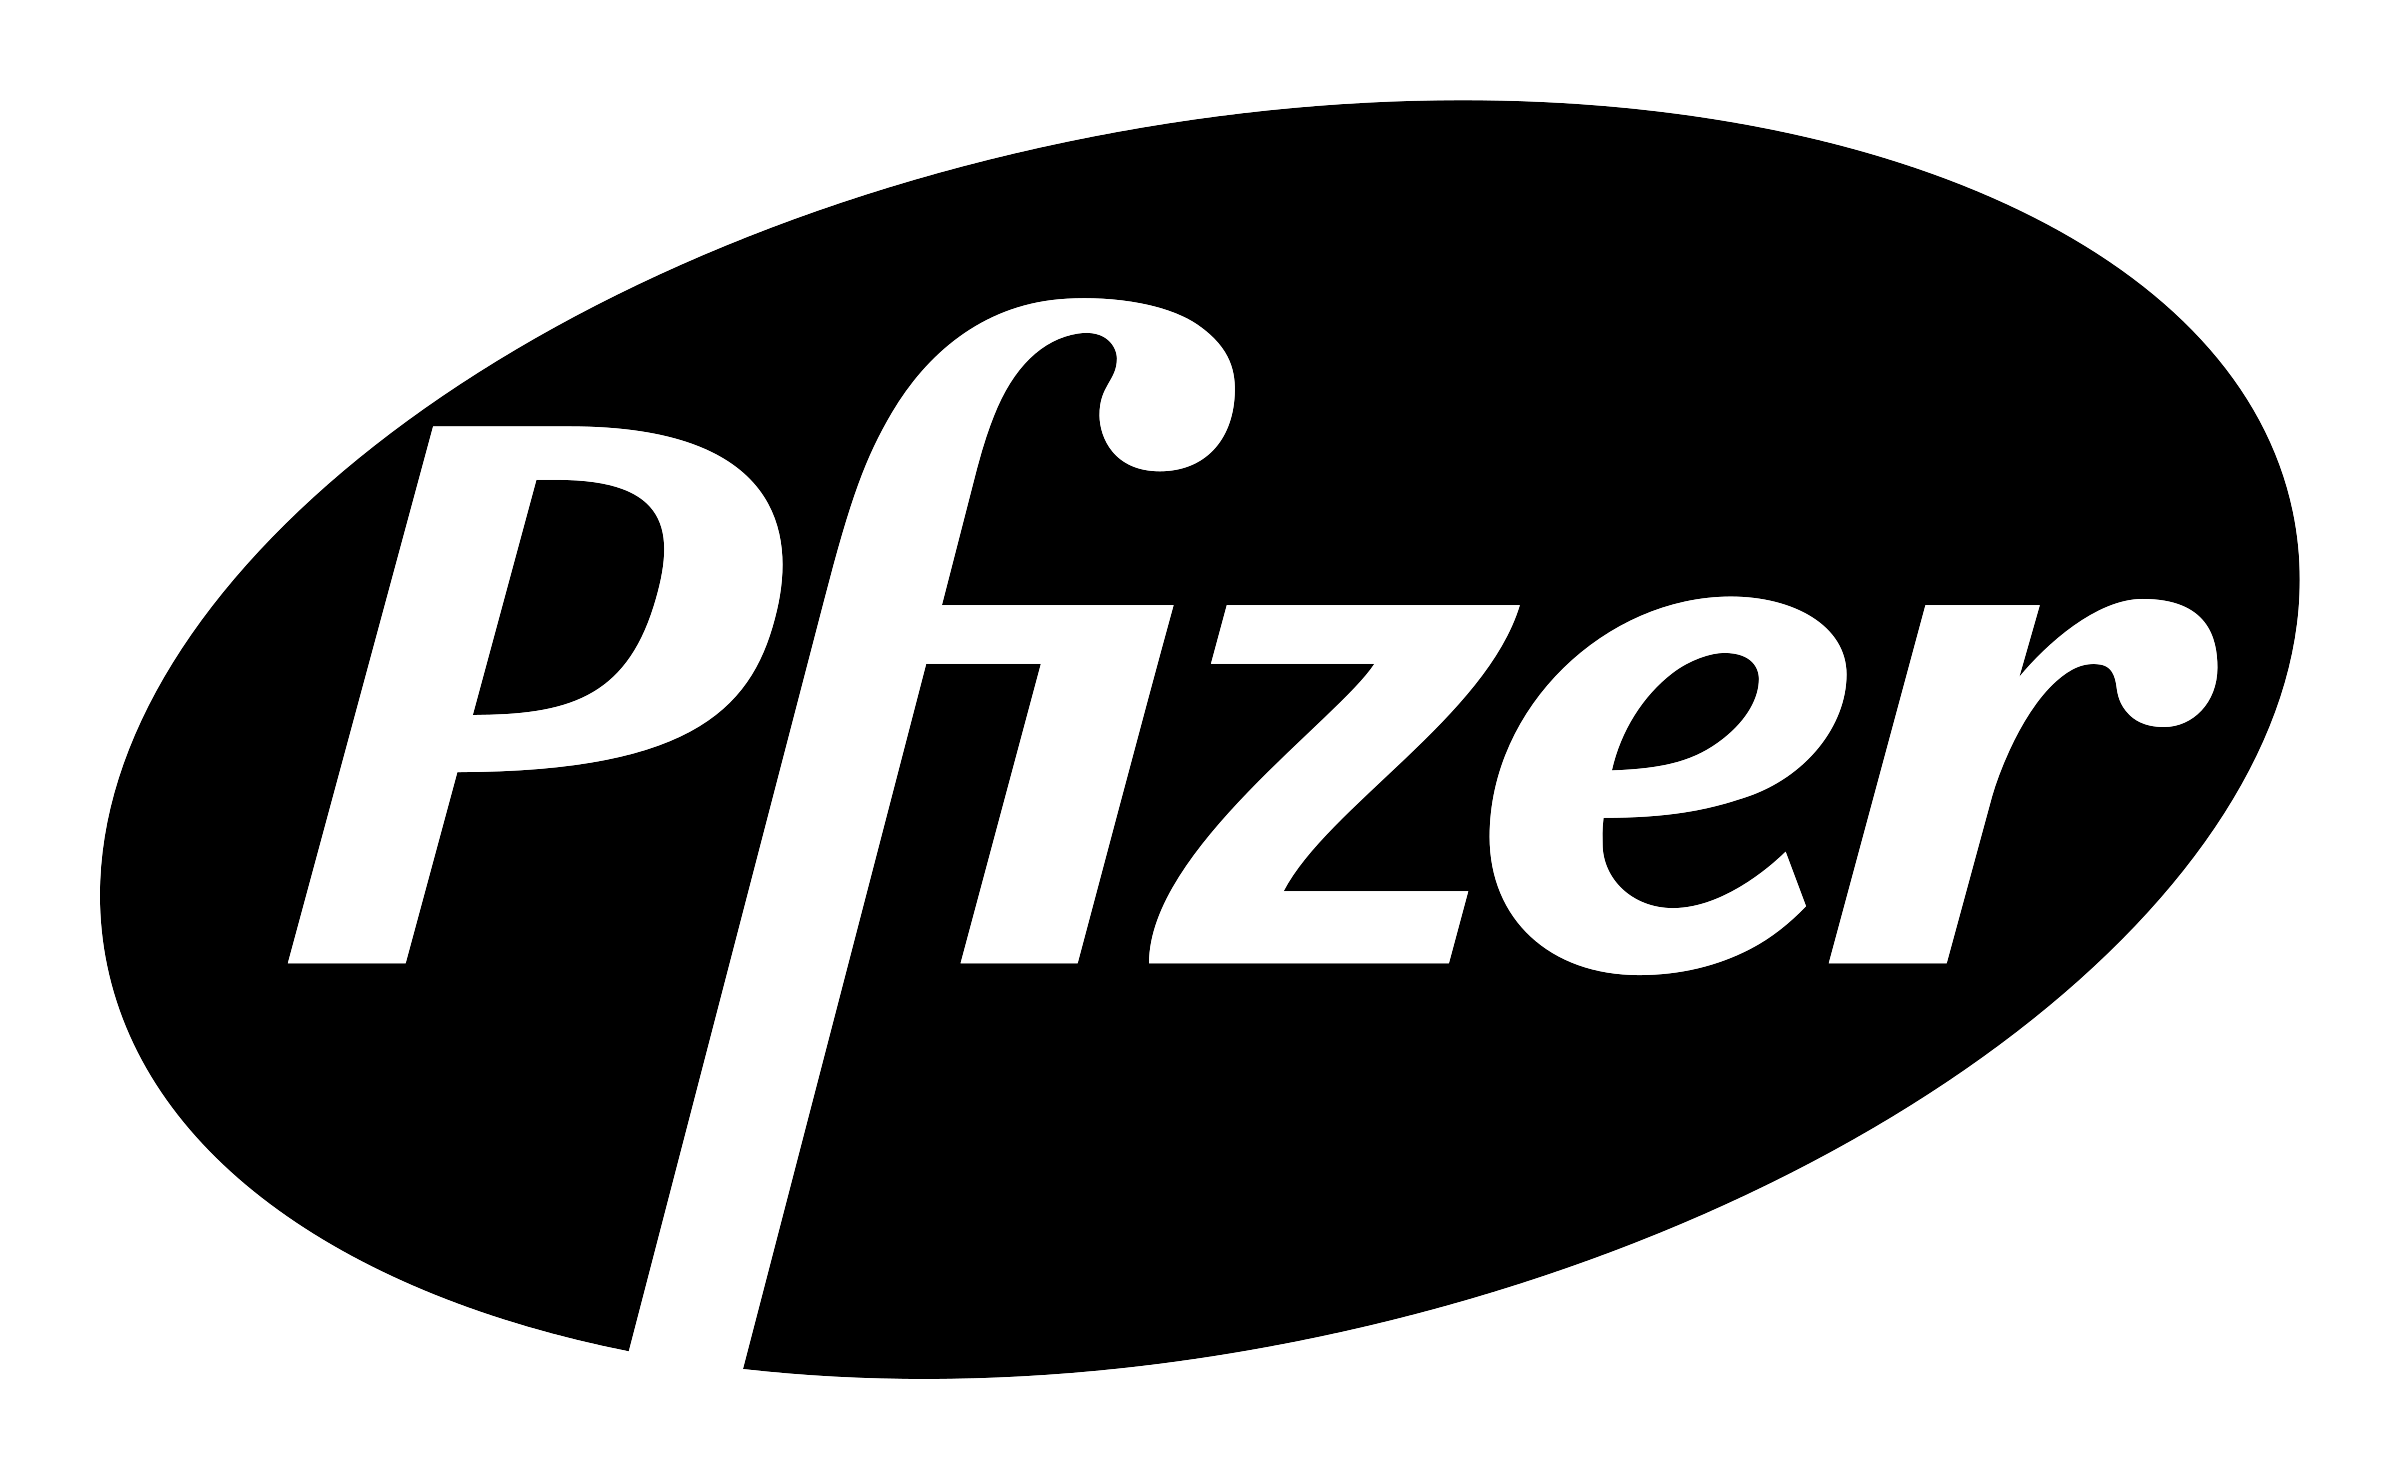 pfizer-logo-black-and-white.png